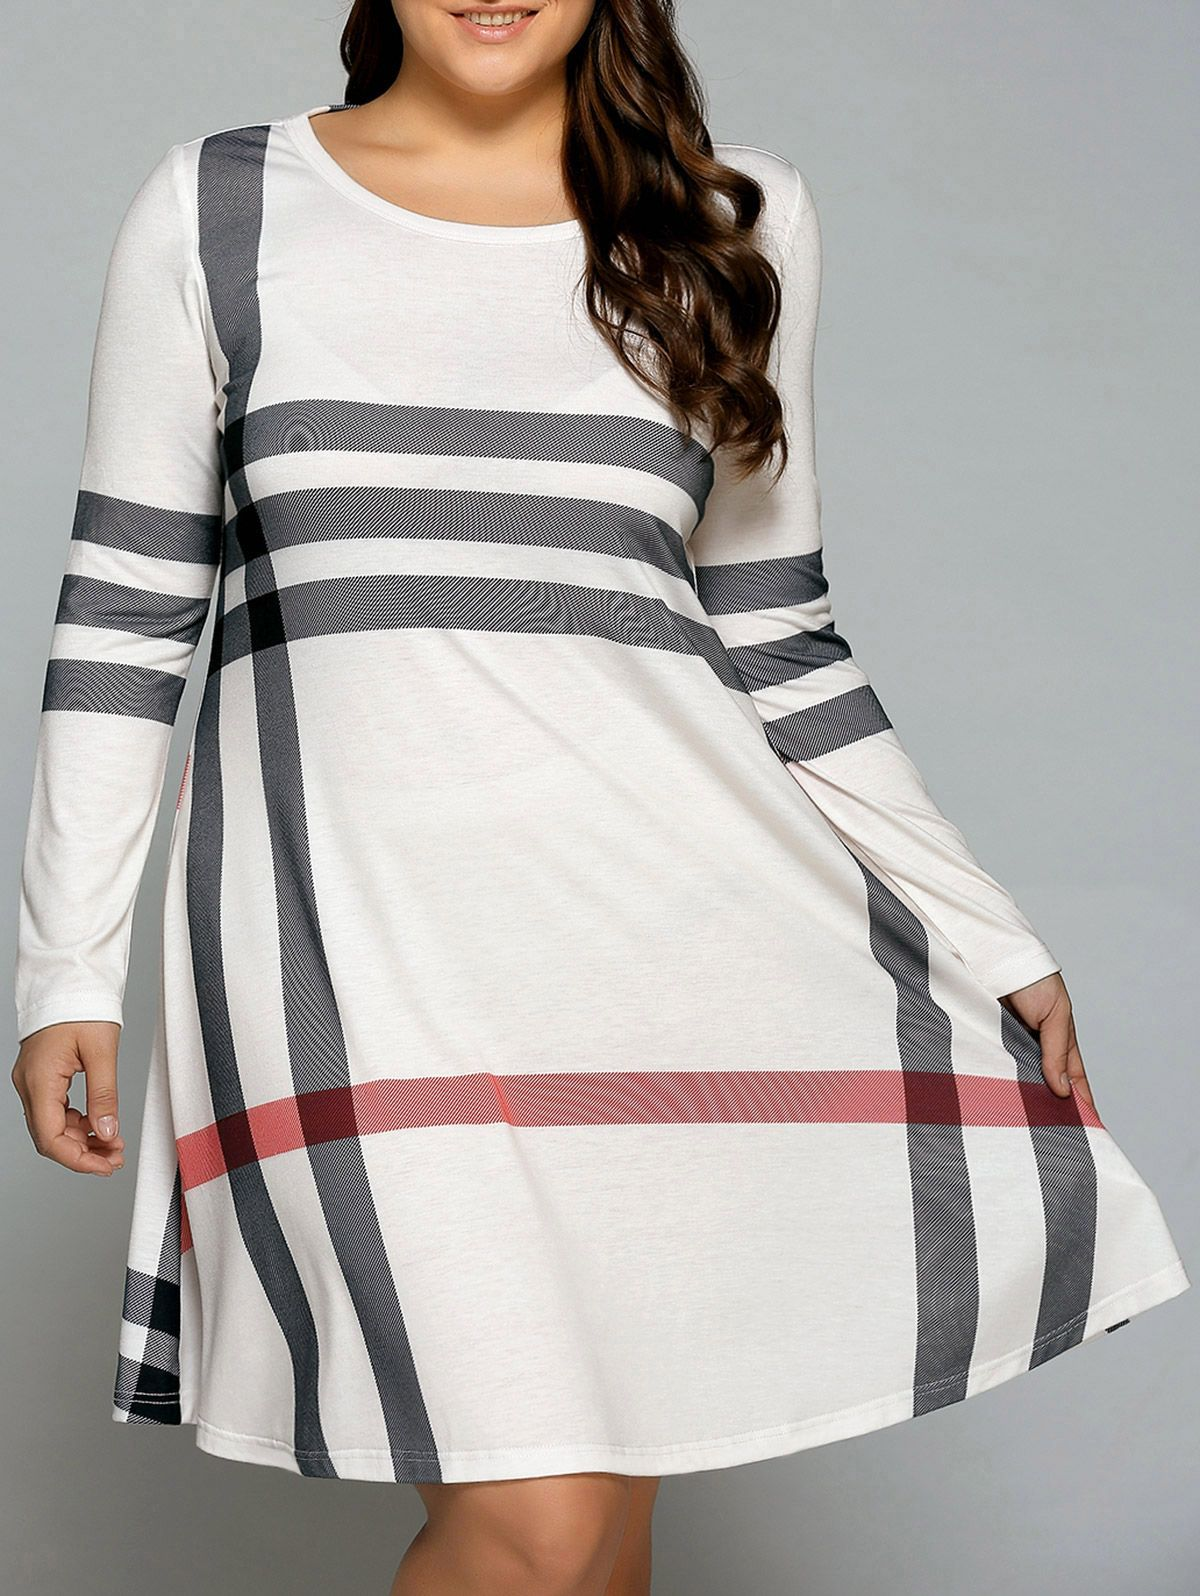 Plus Size Striped Long Sleeve T Shirt Dress Plus Size Clothing